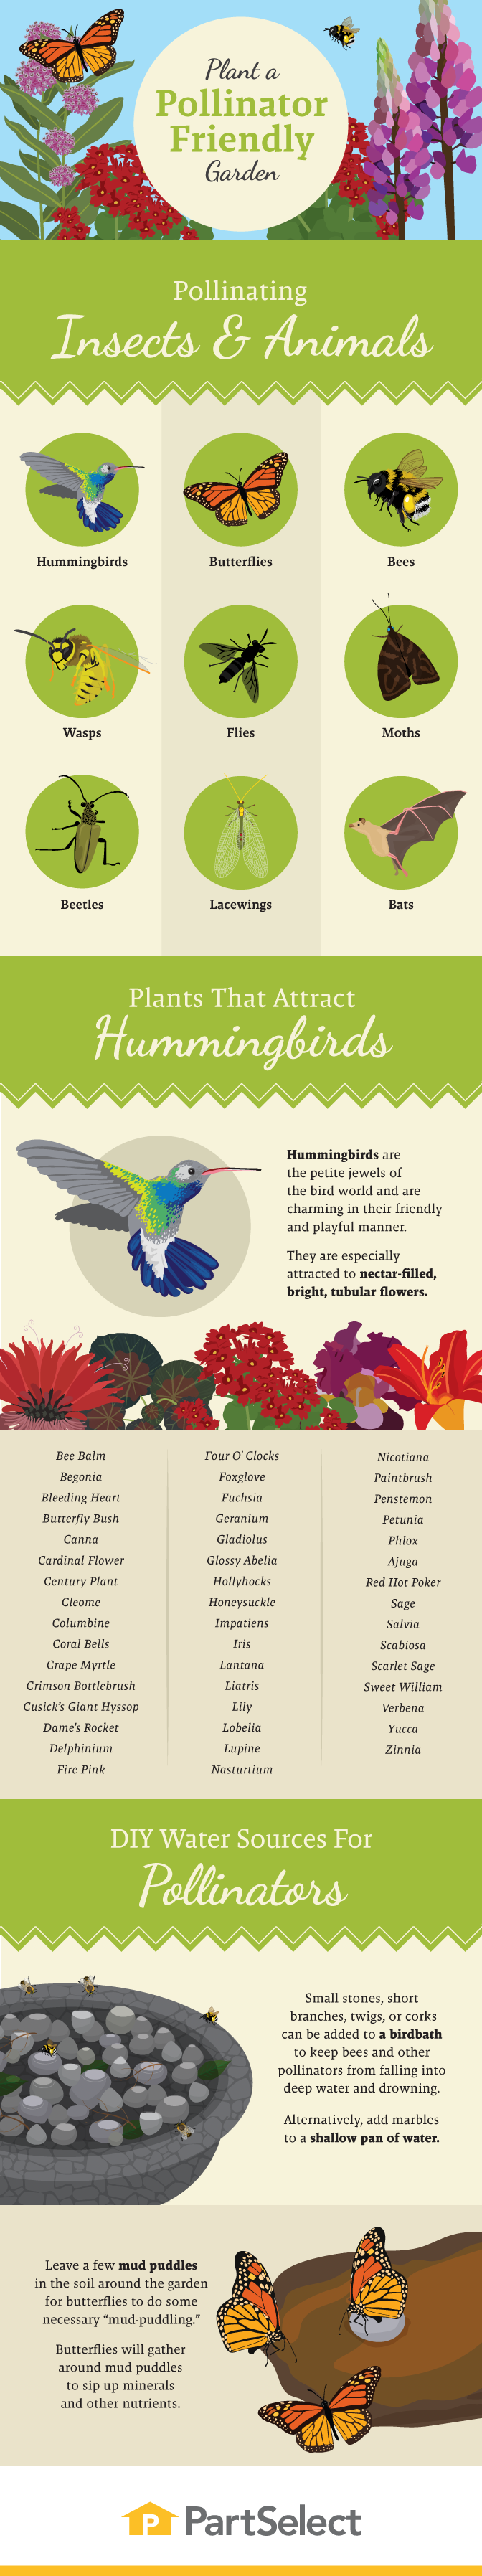 Plant a Pollinator-Friendly Garden #infographic